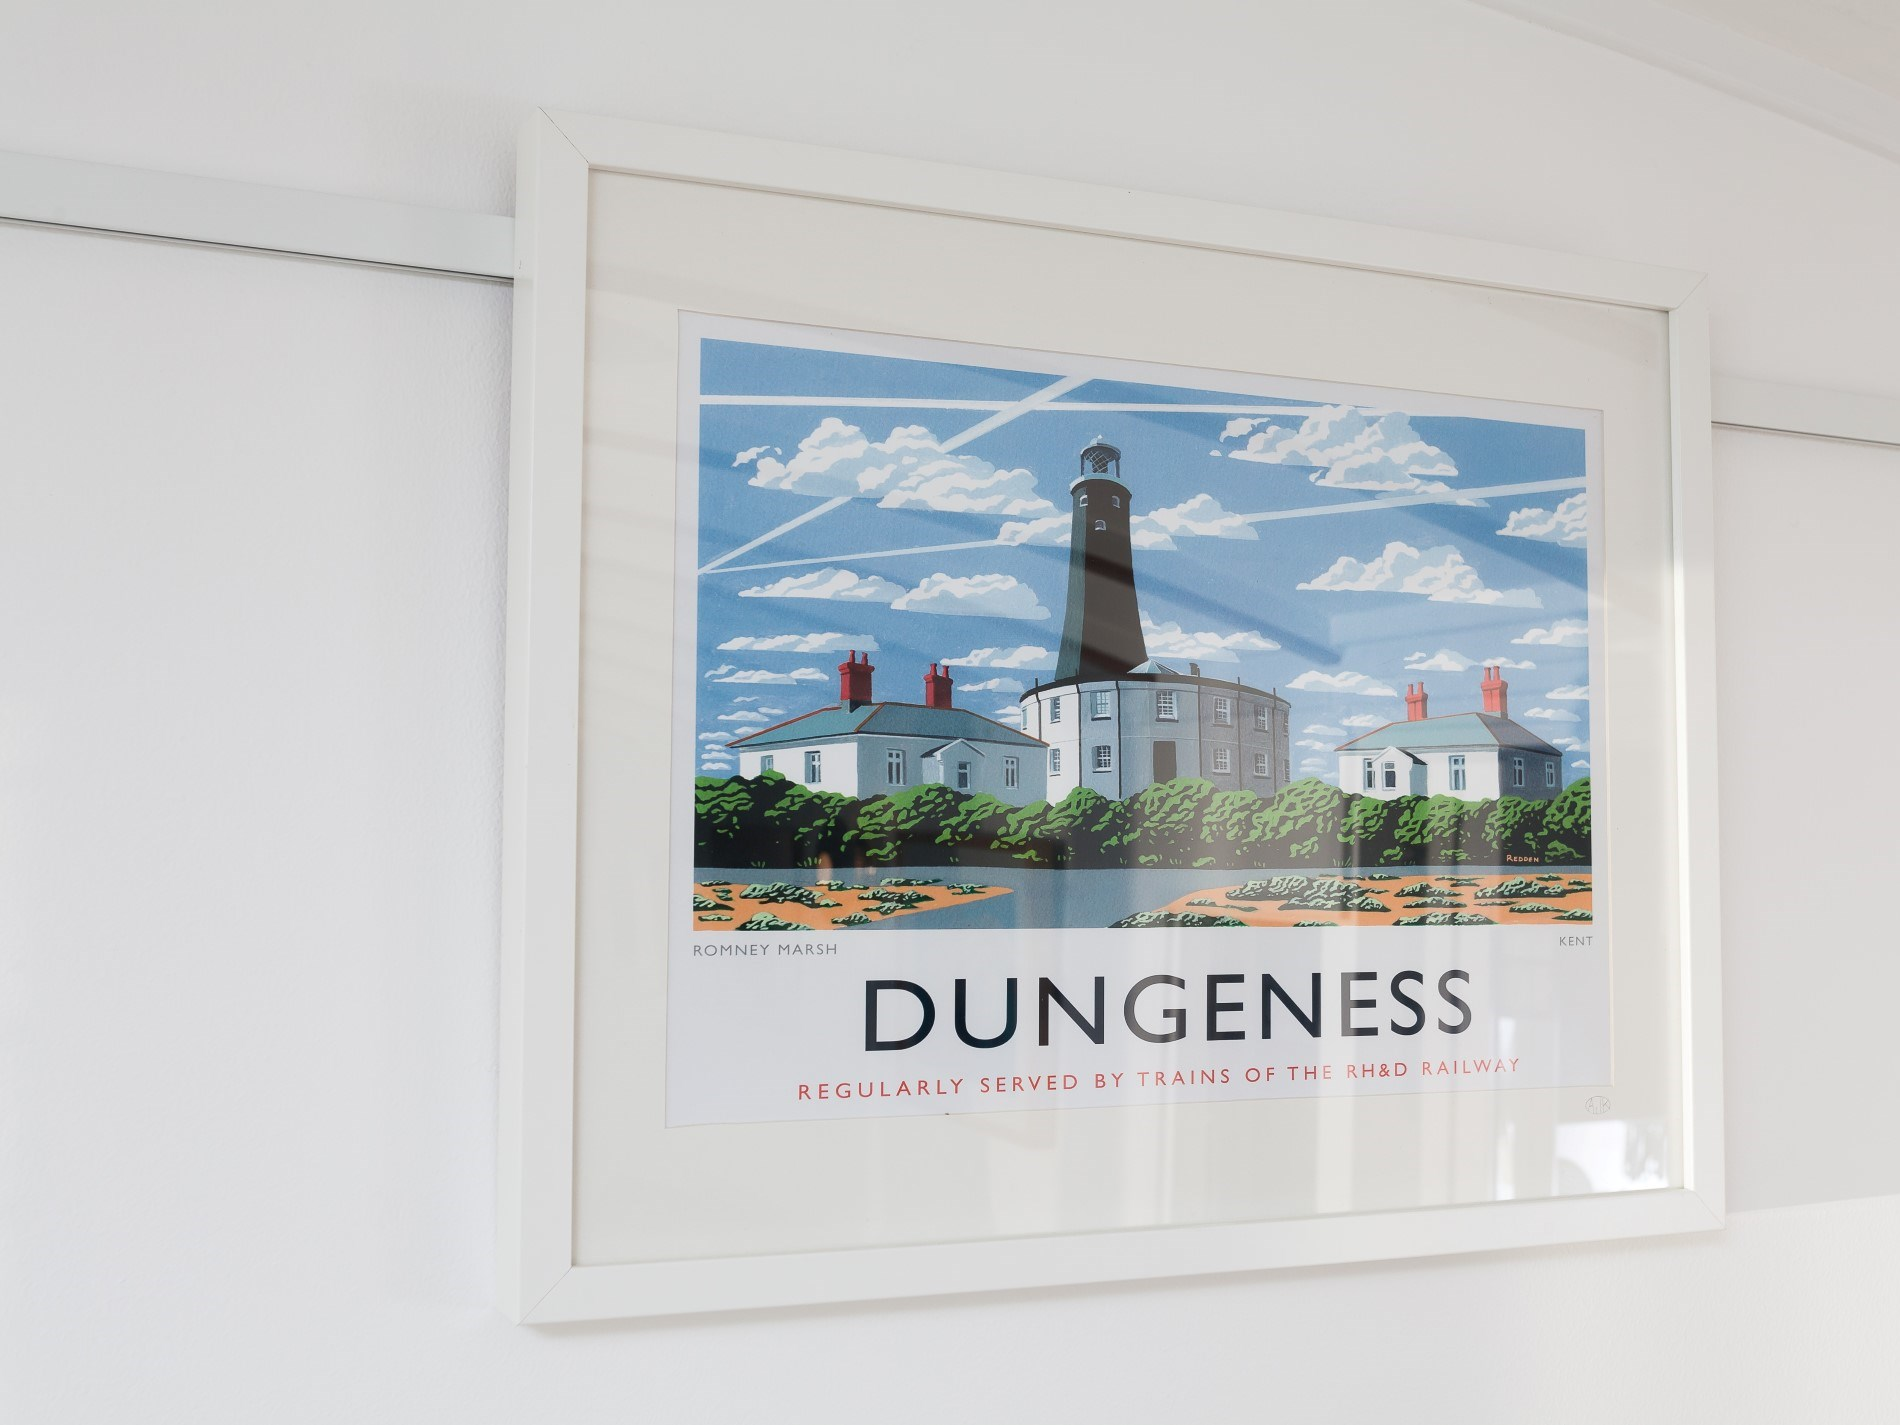 Direct access to Dungeness beach